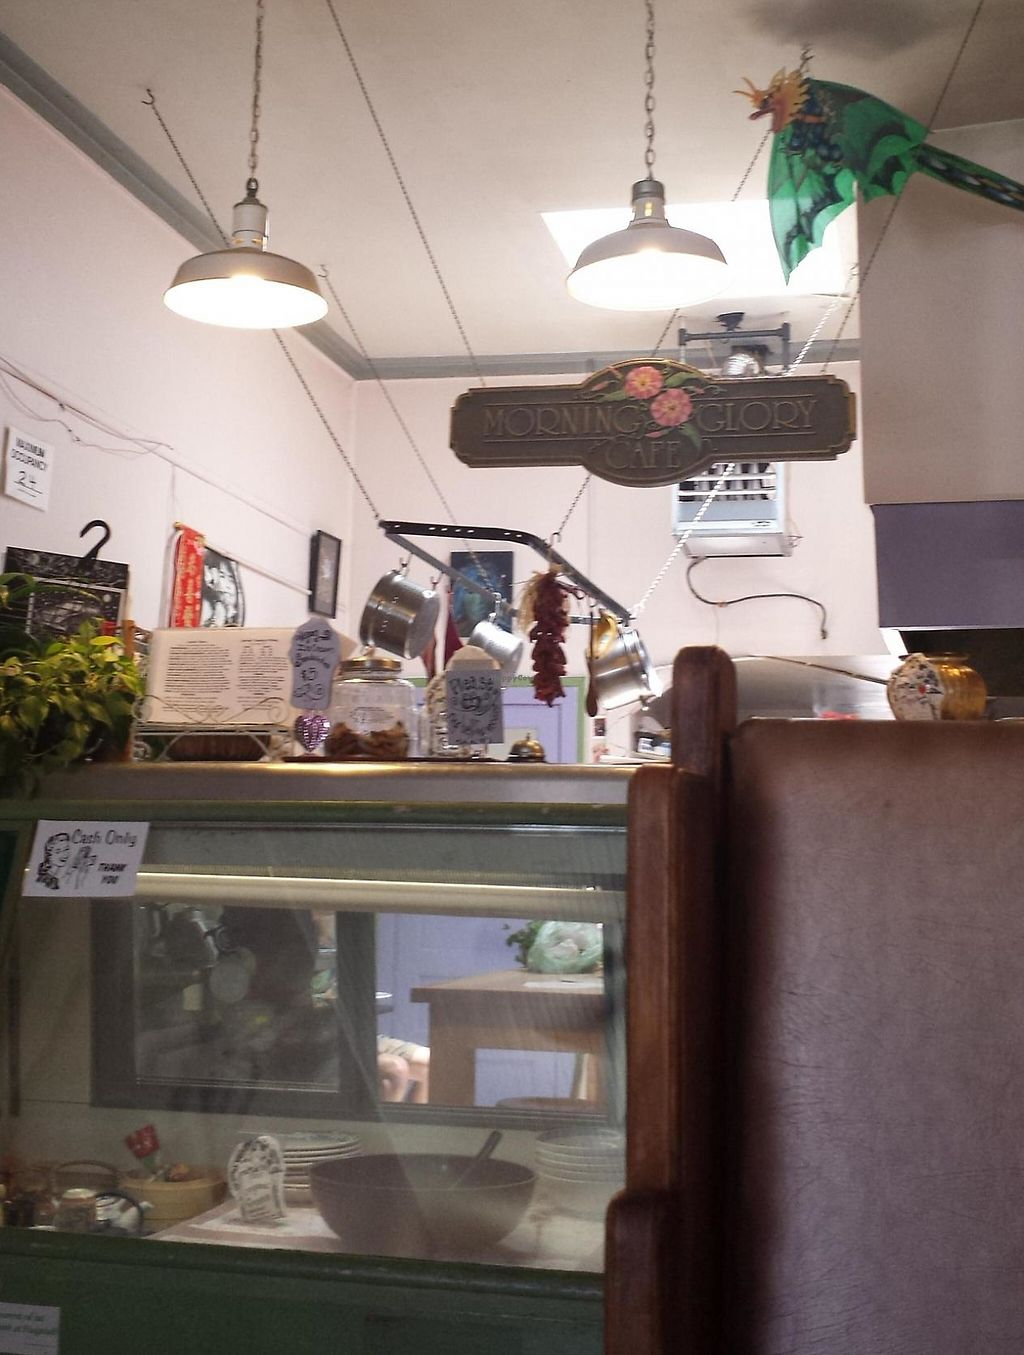 """Photo of Morning Glory Cafe  by <a href=""""/members/profile/ea"""">ea</a> <br/>front counter <br/> June 7, 2014  - <a href='/contact/abuse/image/19776/190291'>Report</a>"""